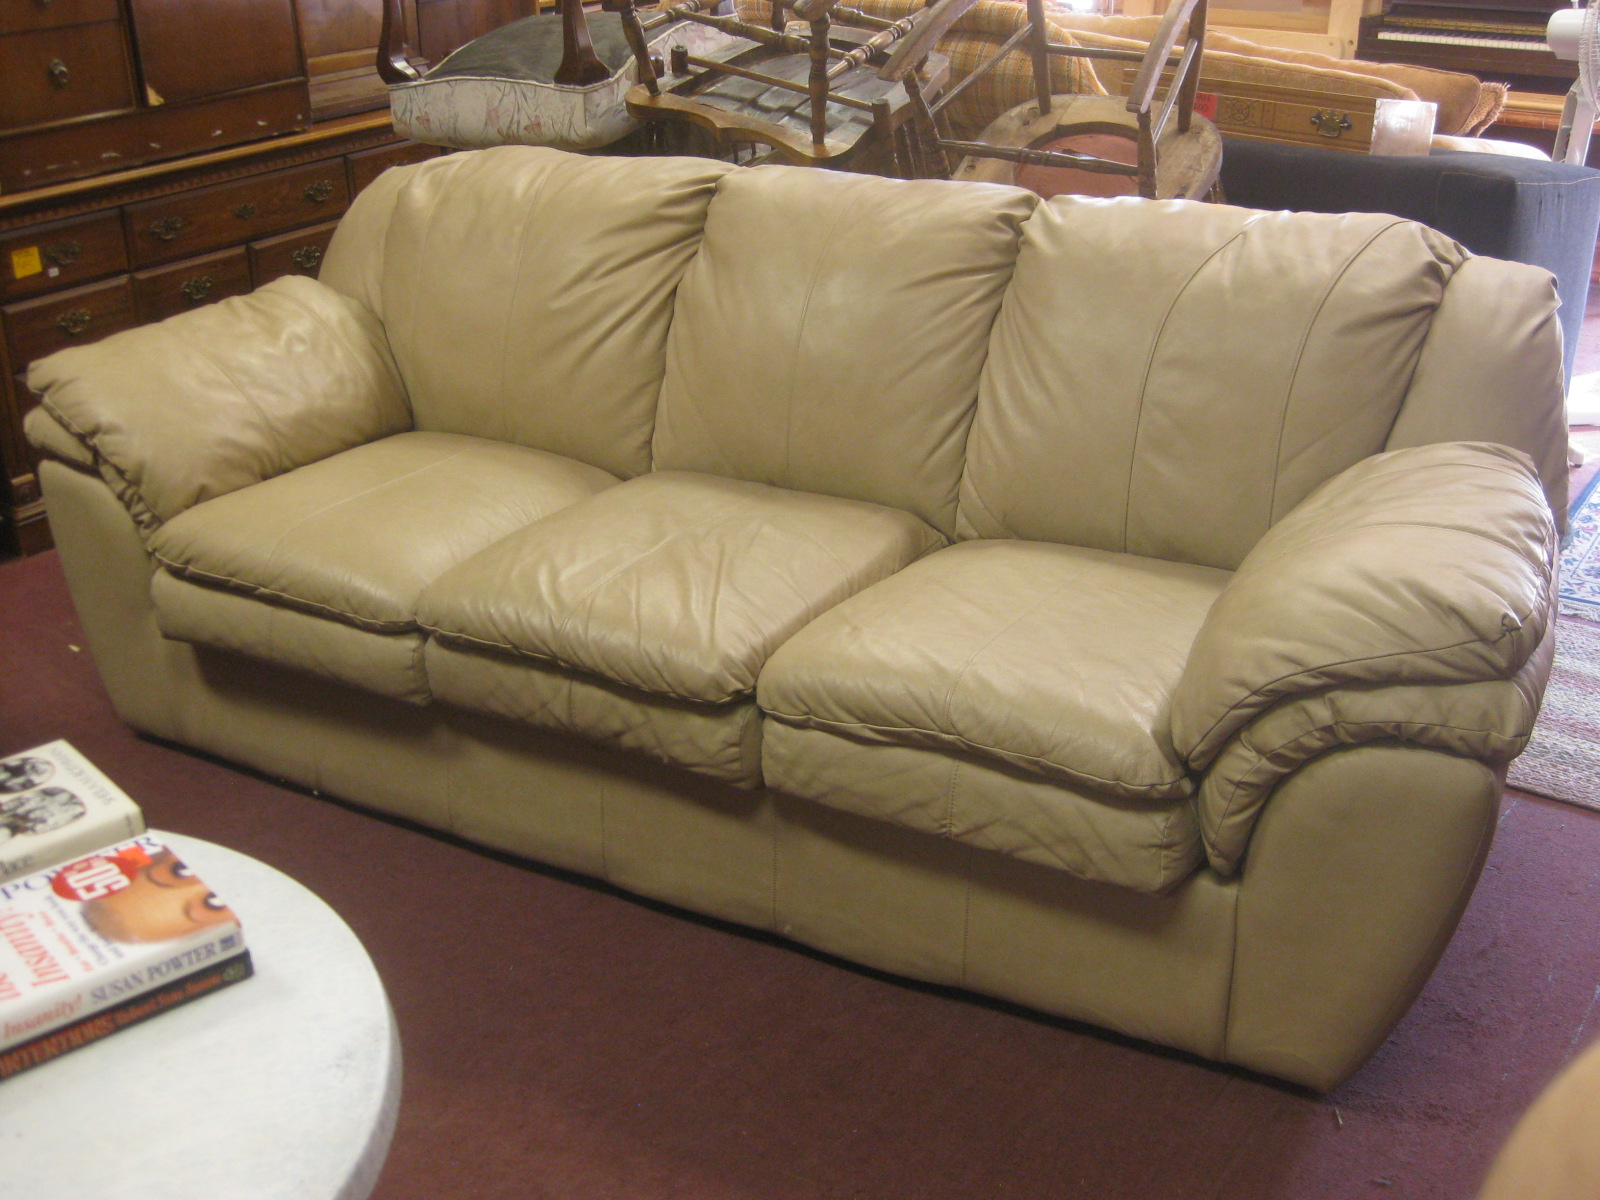 UHURU FURNITURE & COLLECTIBLES SOLD Tan Leather Sofa $250